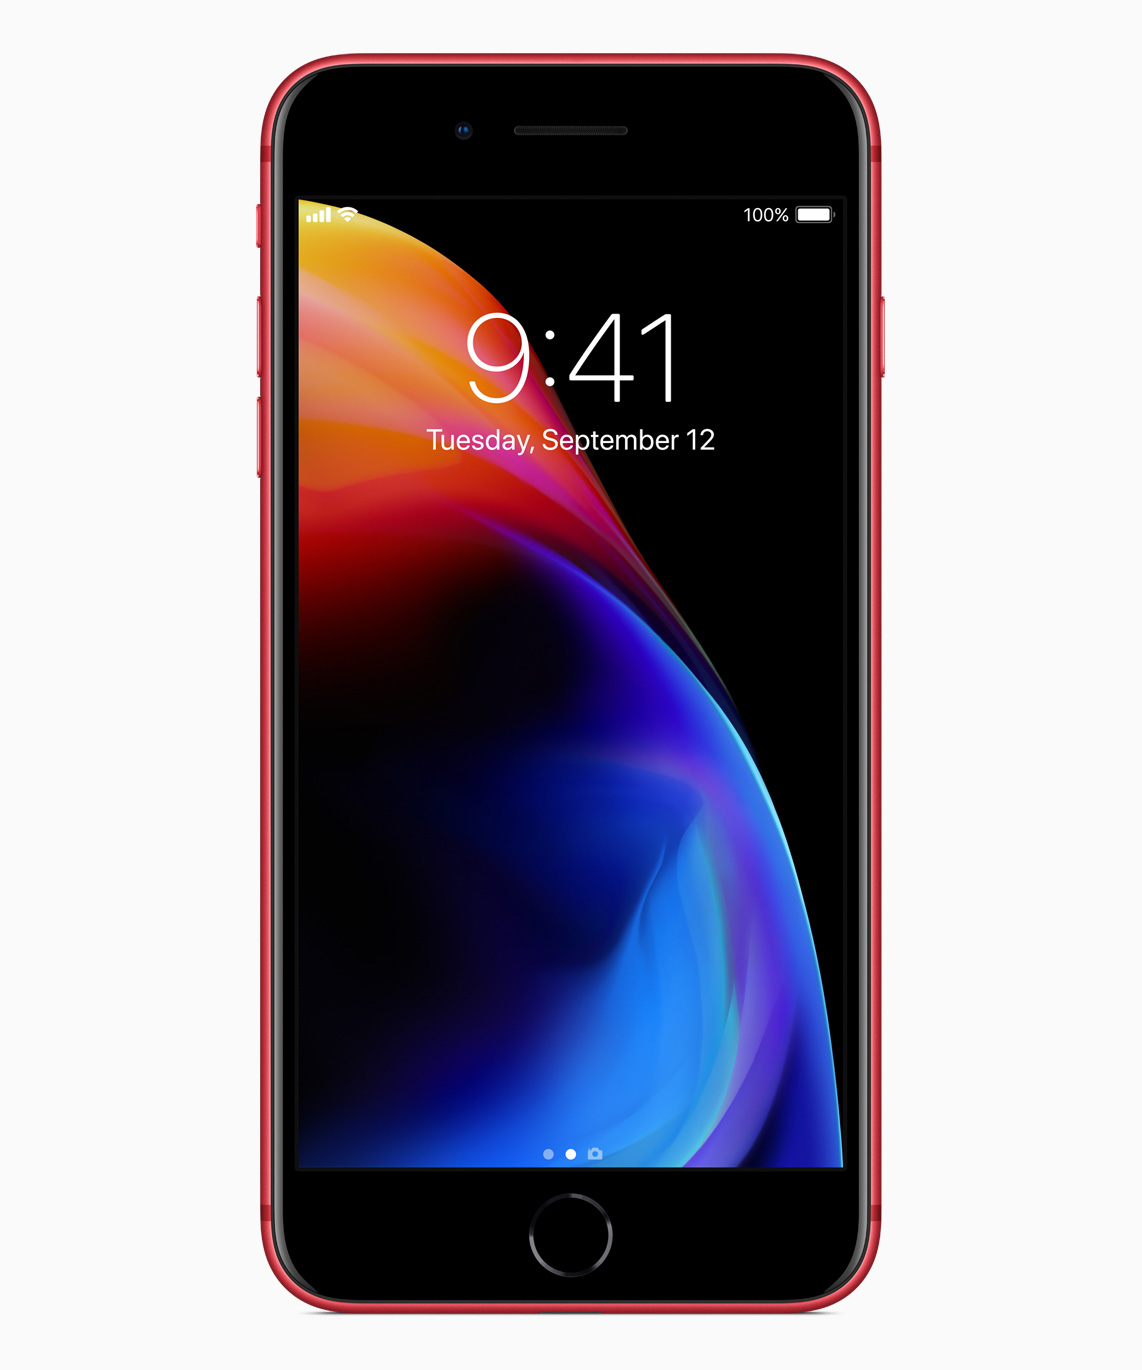 iphone8plus_product_red_front_041018